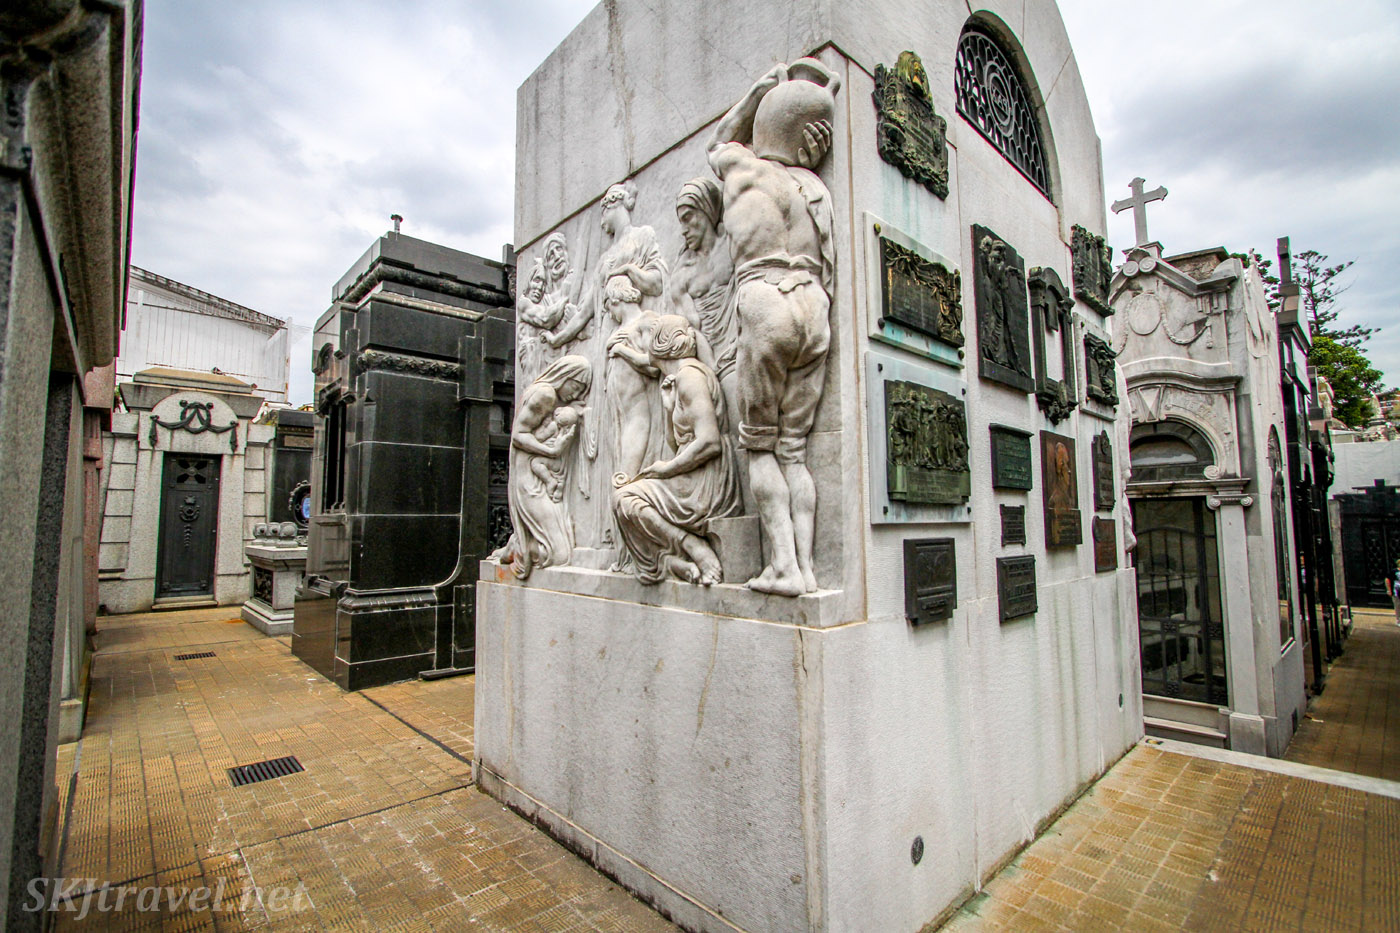 Multiple commemorative plaques on the outer walls of a mausoleum in Recoleta Cemetery, Buenos Aires, Argentina.